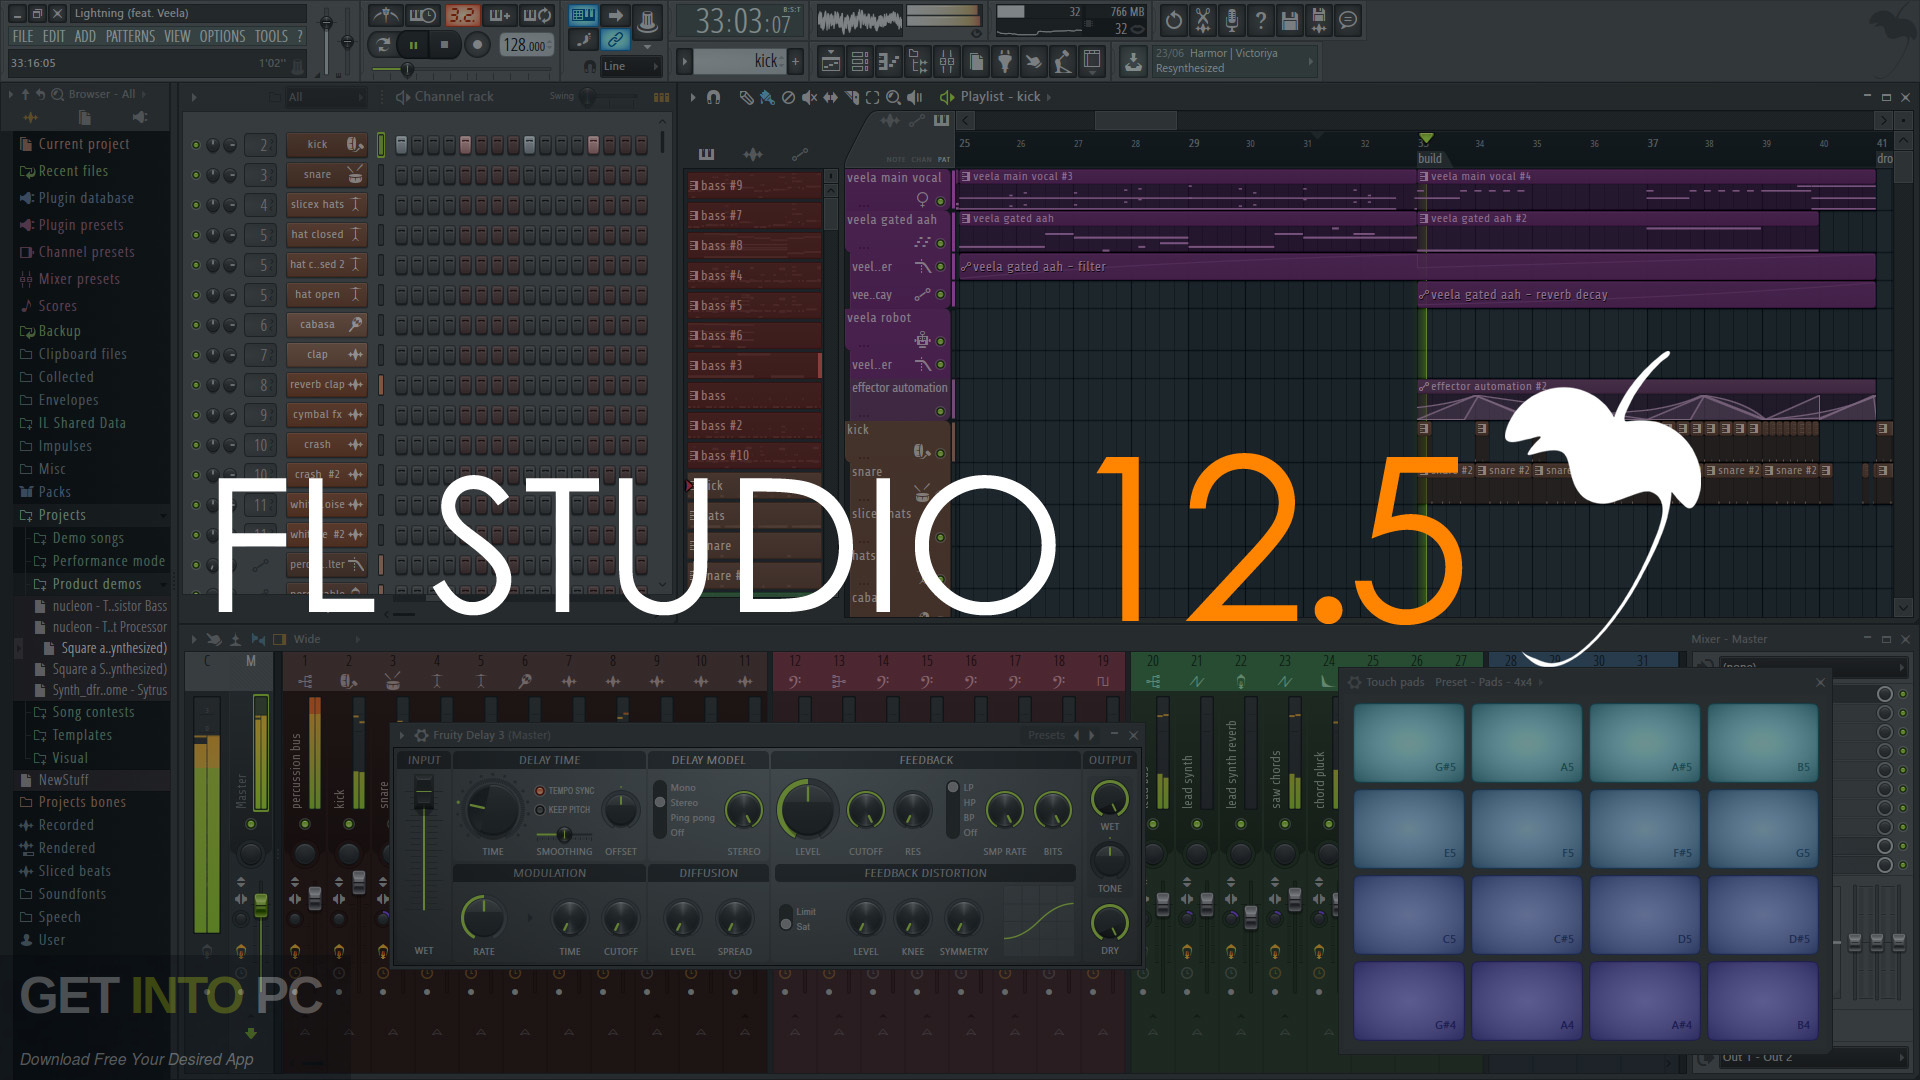 FL Studio 12 5 Signature Bundle + All FL Studio Plugins Download